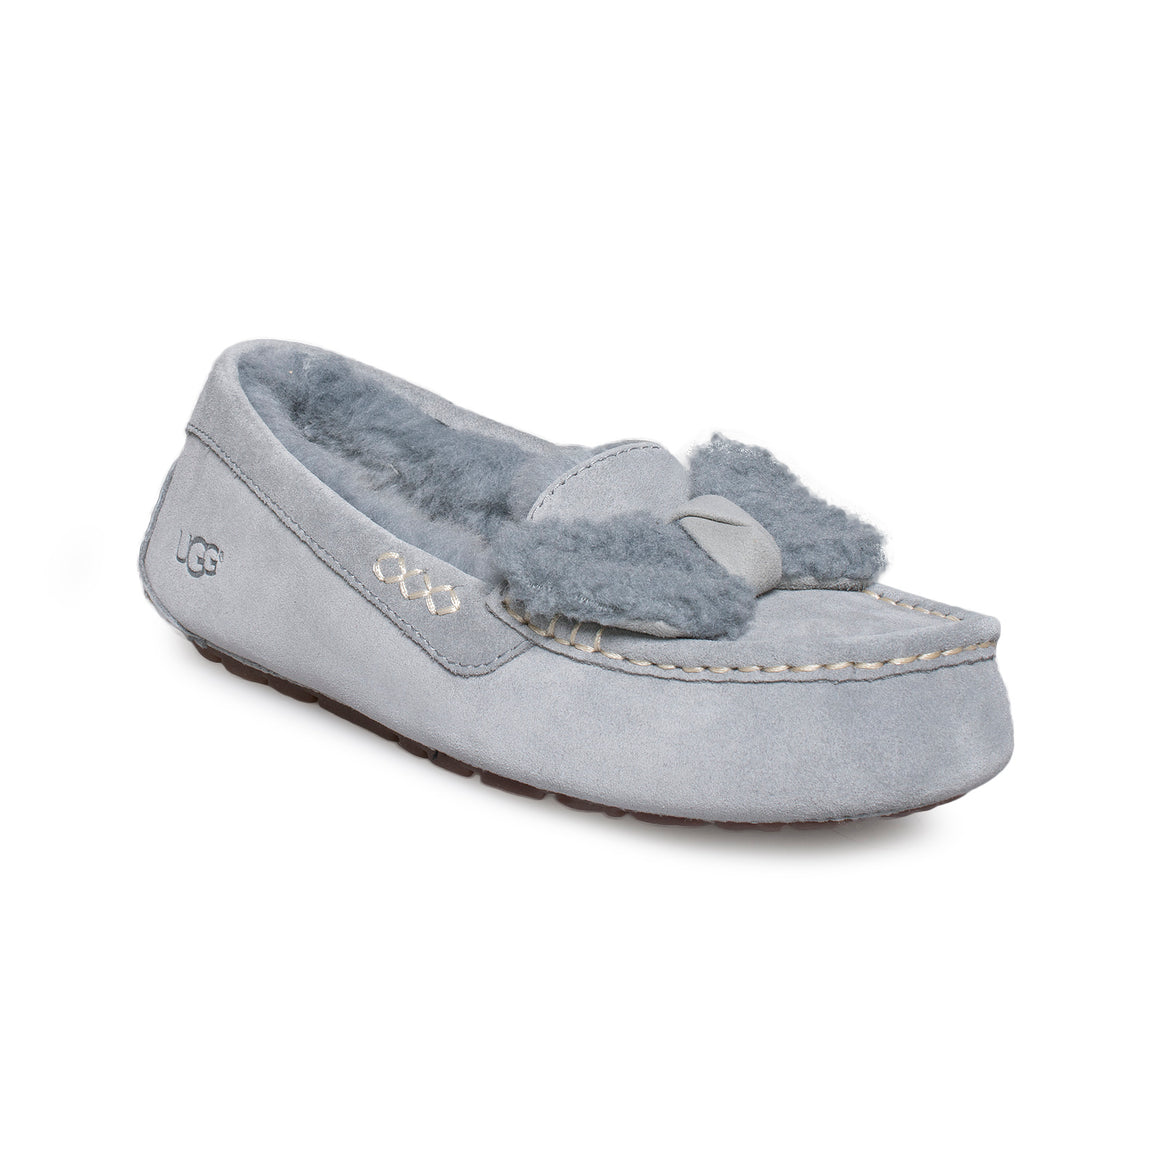 UGG Ansley Fur Bow Geyser Slippers